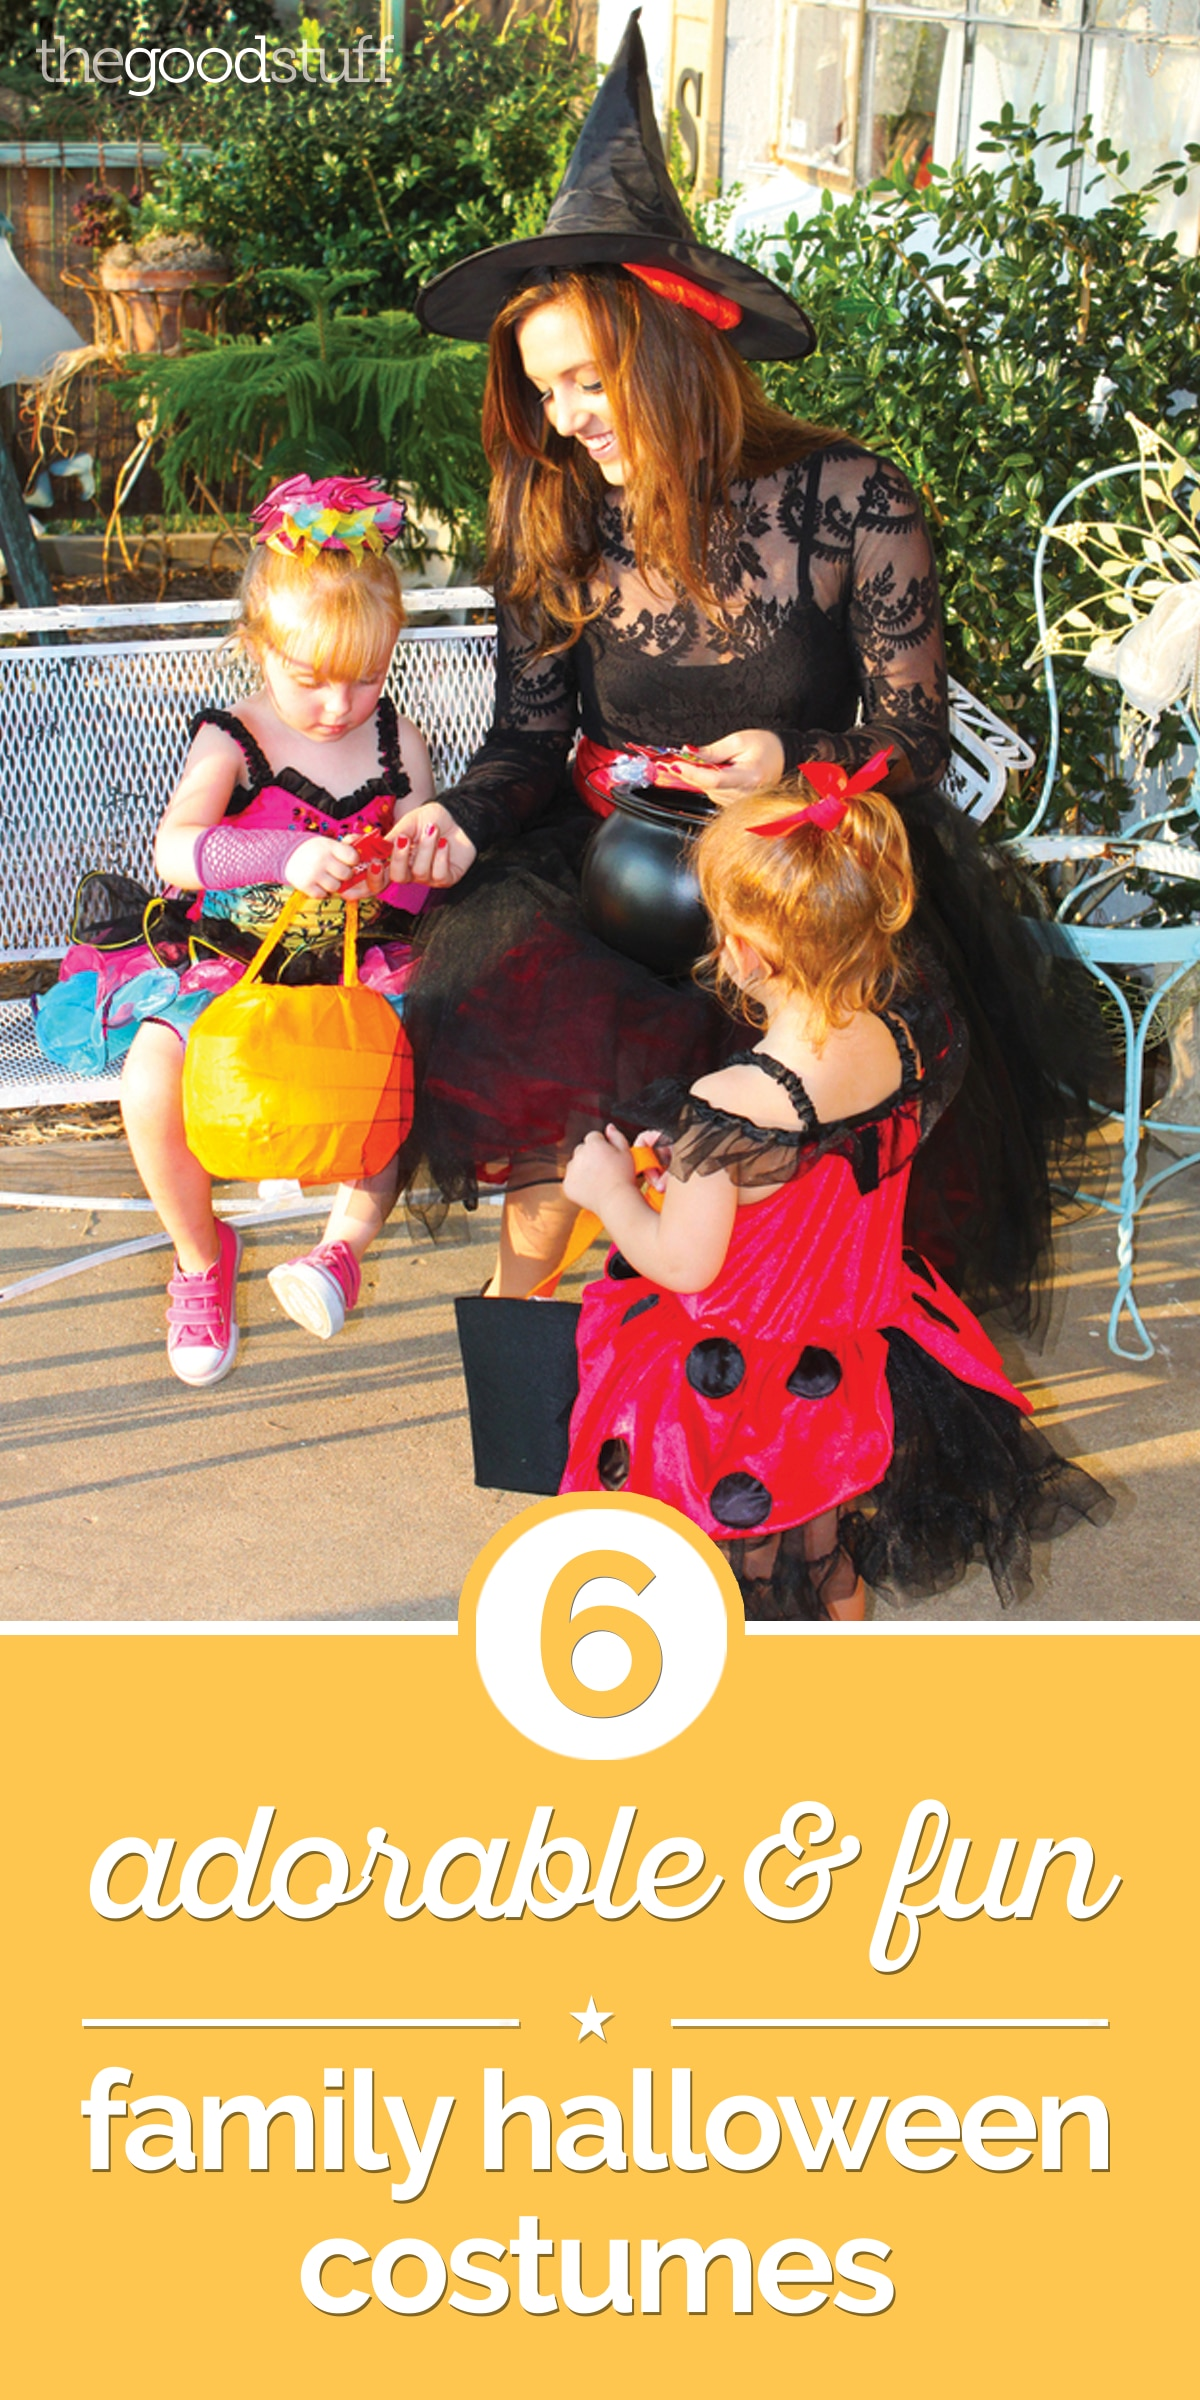 6 Adorable & Fun Family Halloween Costumes | thegoodstuff